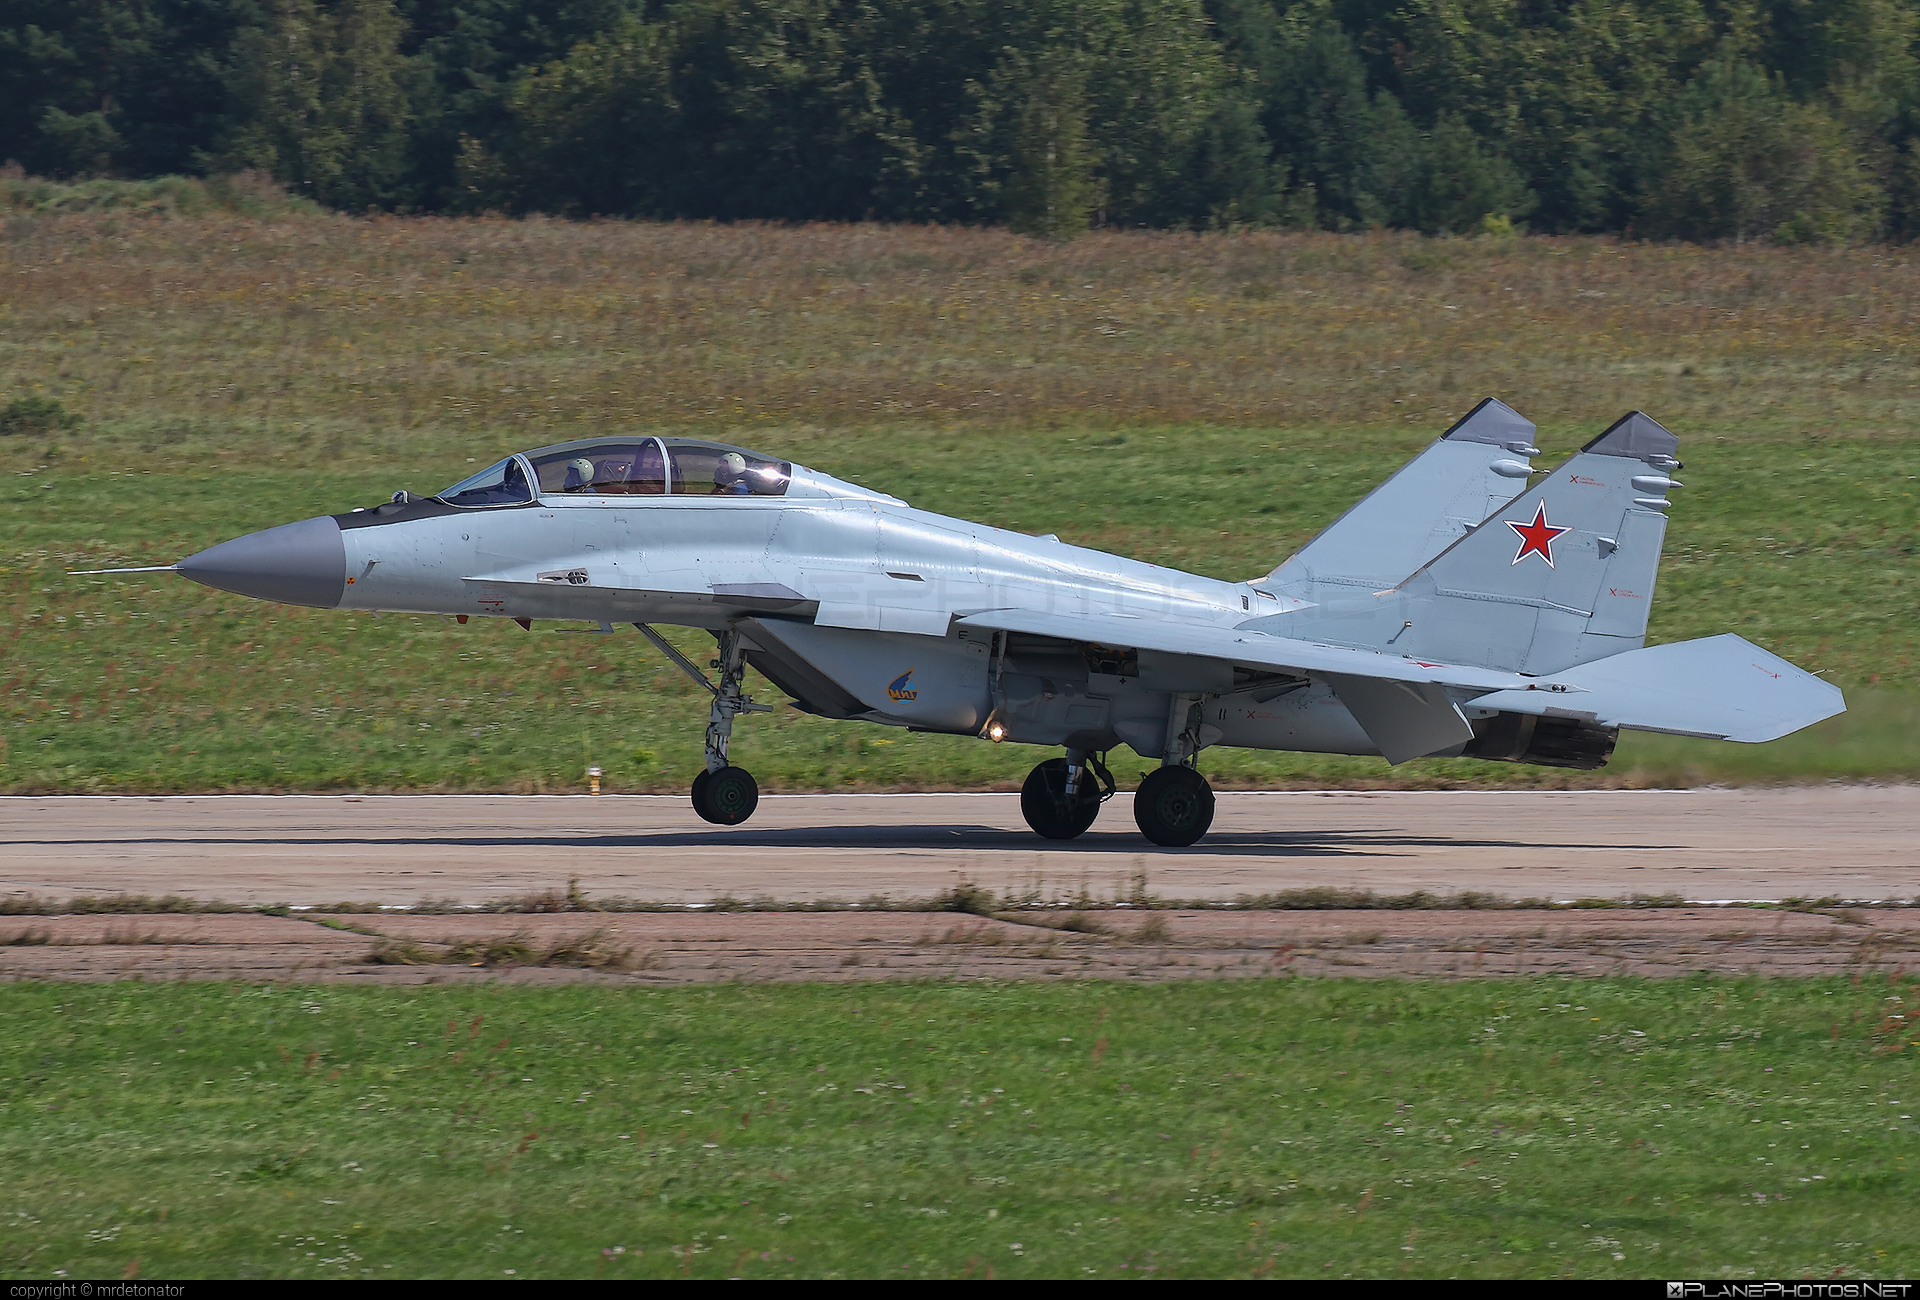 Mikoyan-Gurevich MiG-29M2 - 747 operated by RSK MiG #maks2019 #mig #mig29 #mig29m2 #mikoyangurevich